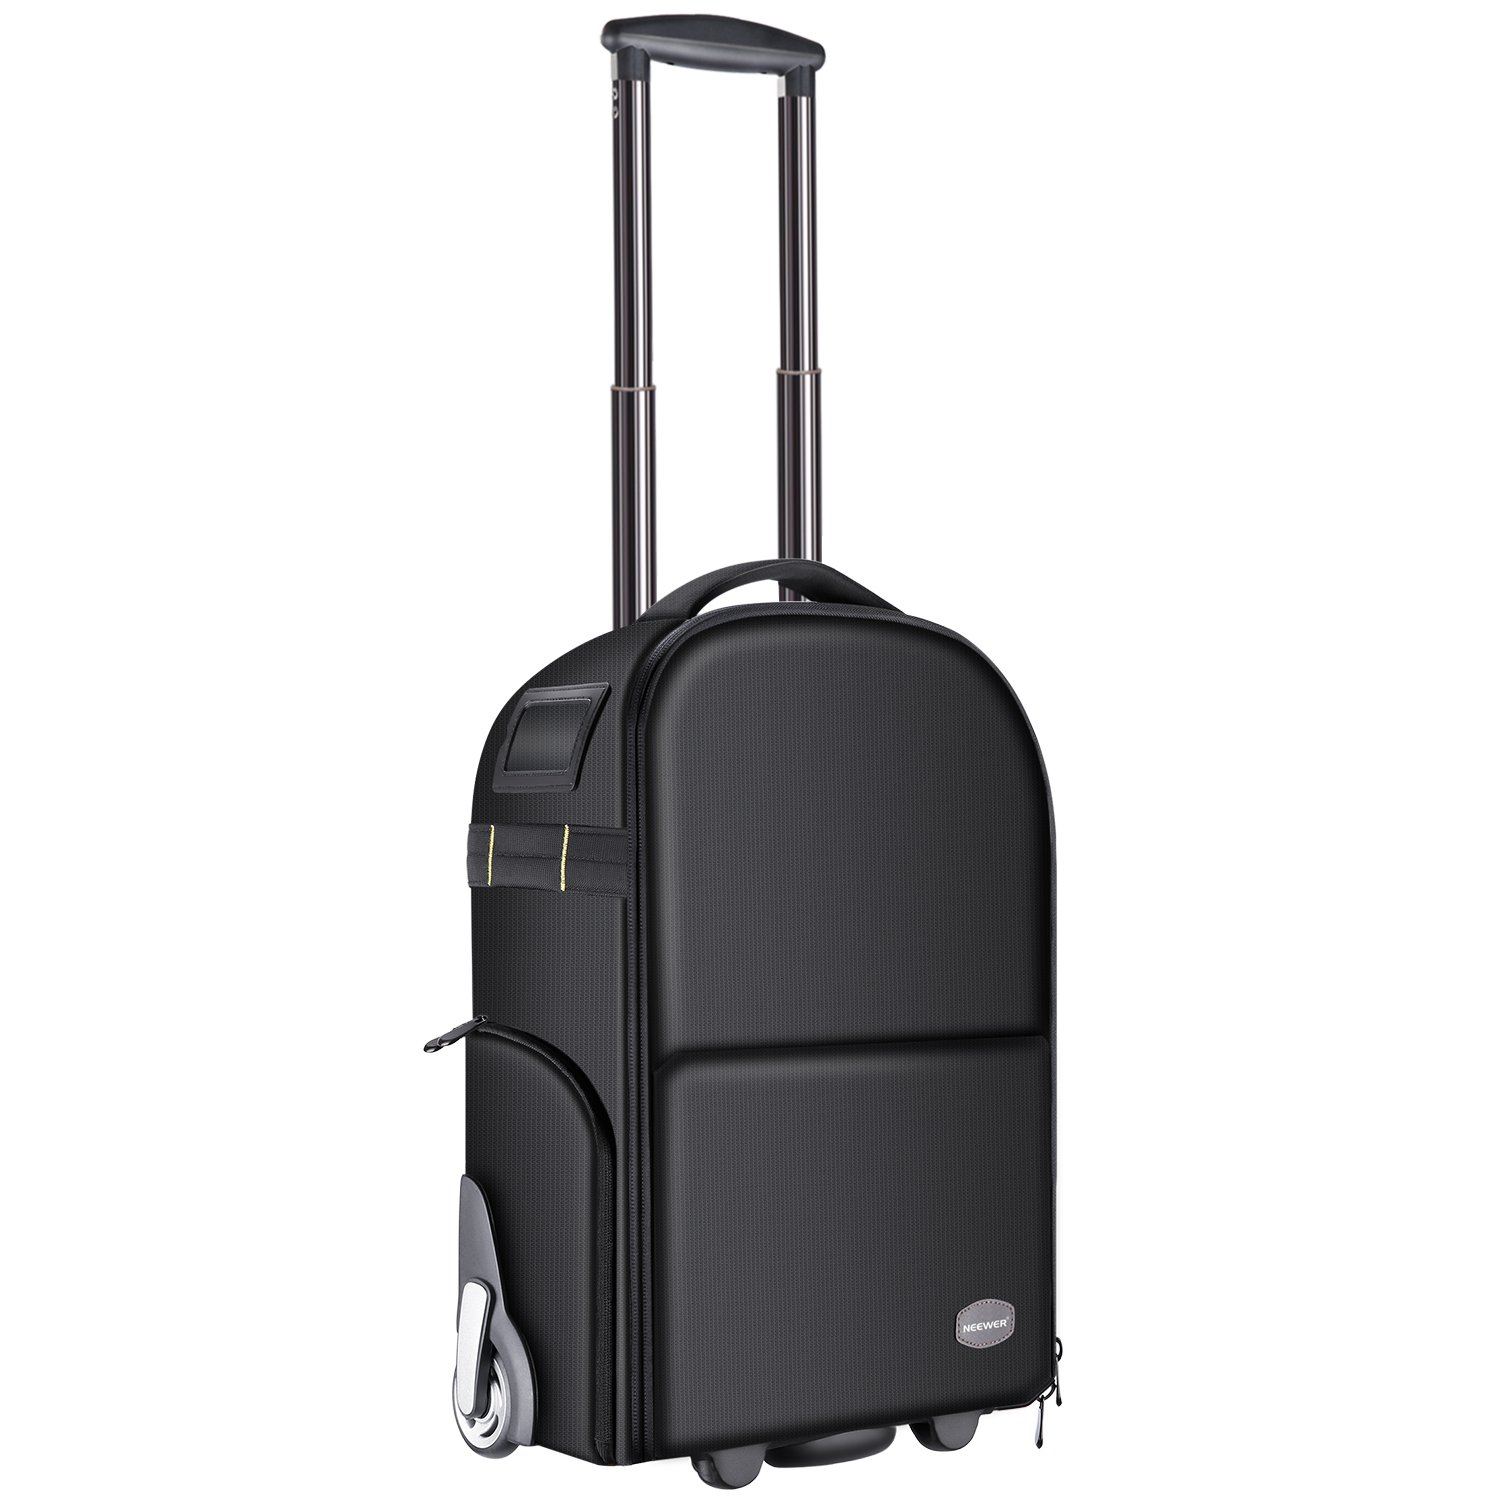 Neewer 2-in-1 Camera Backpack Luggage Trolley Case with Double Bar, Anti-shock Detachable Padded Compartment, Hidden Pull Bar and Strap, Waterproof for DSLR Cameras, Tripod, Lens for Air Travelling by Neewer